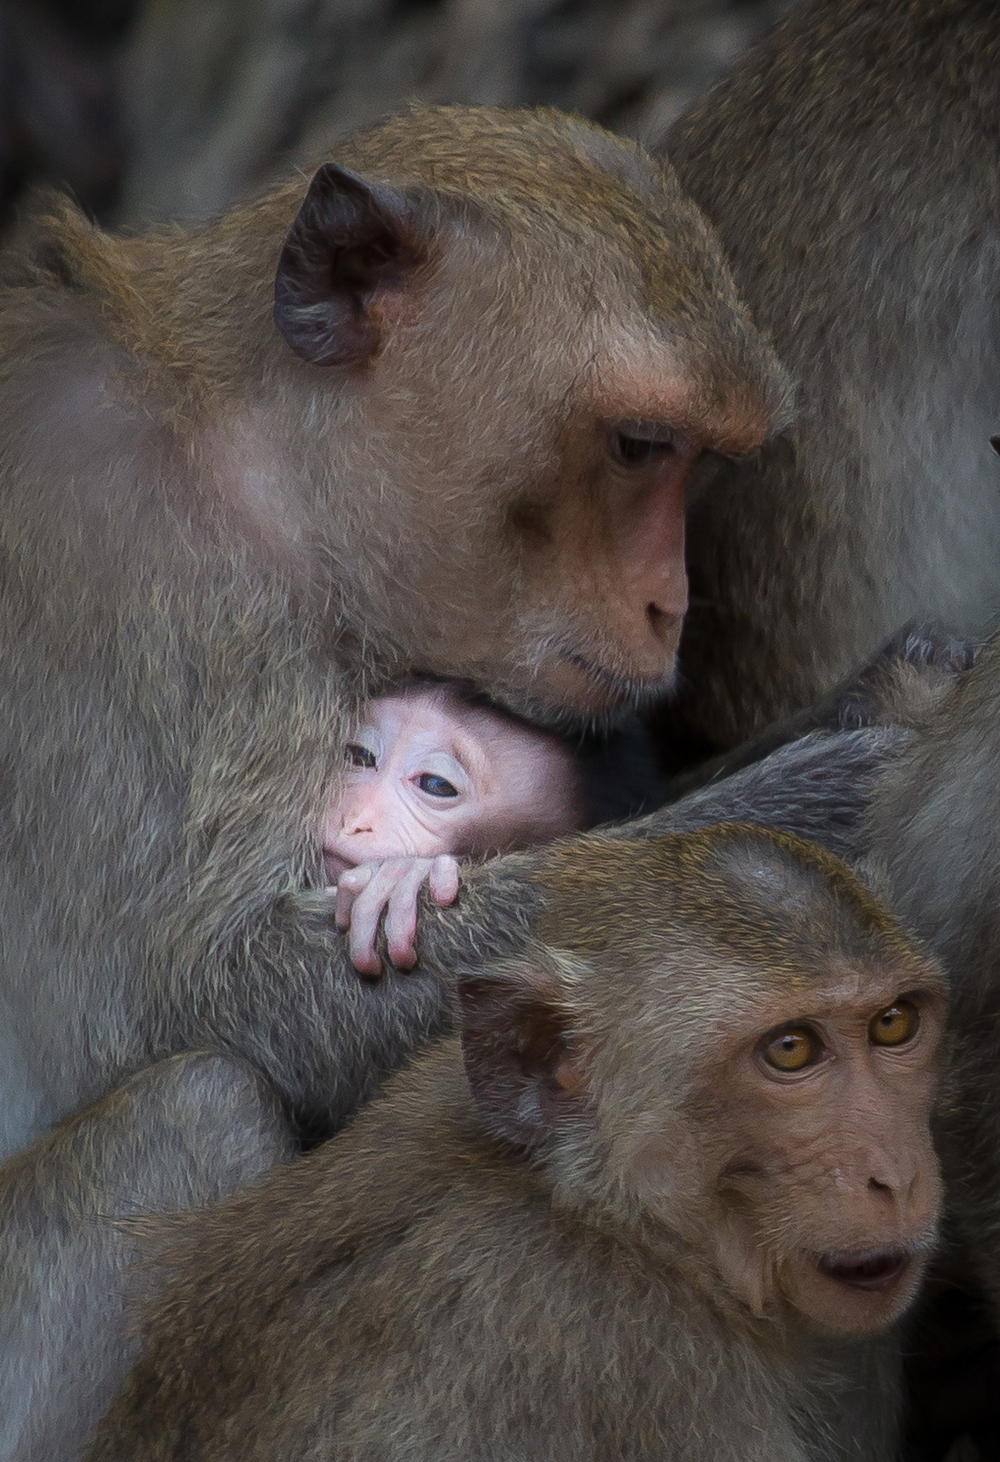 A group of monkeys gathers on a rock. A mother holds her small baby close to her chest.